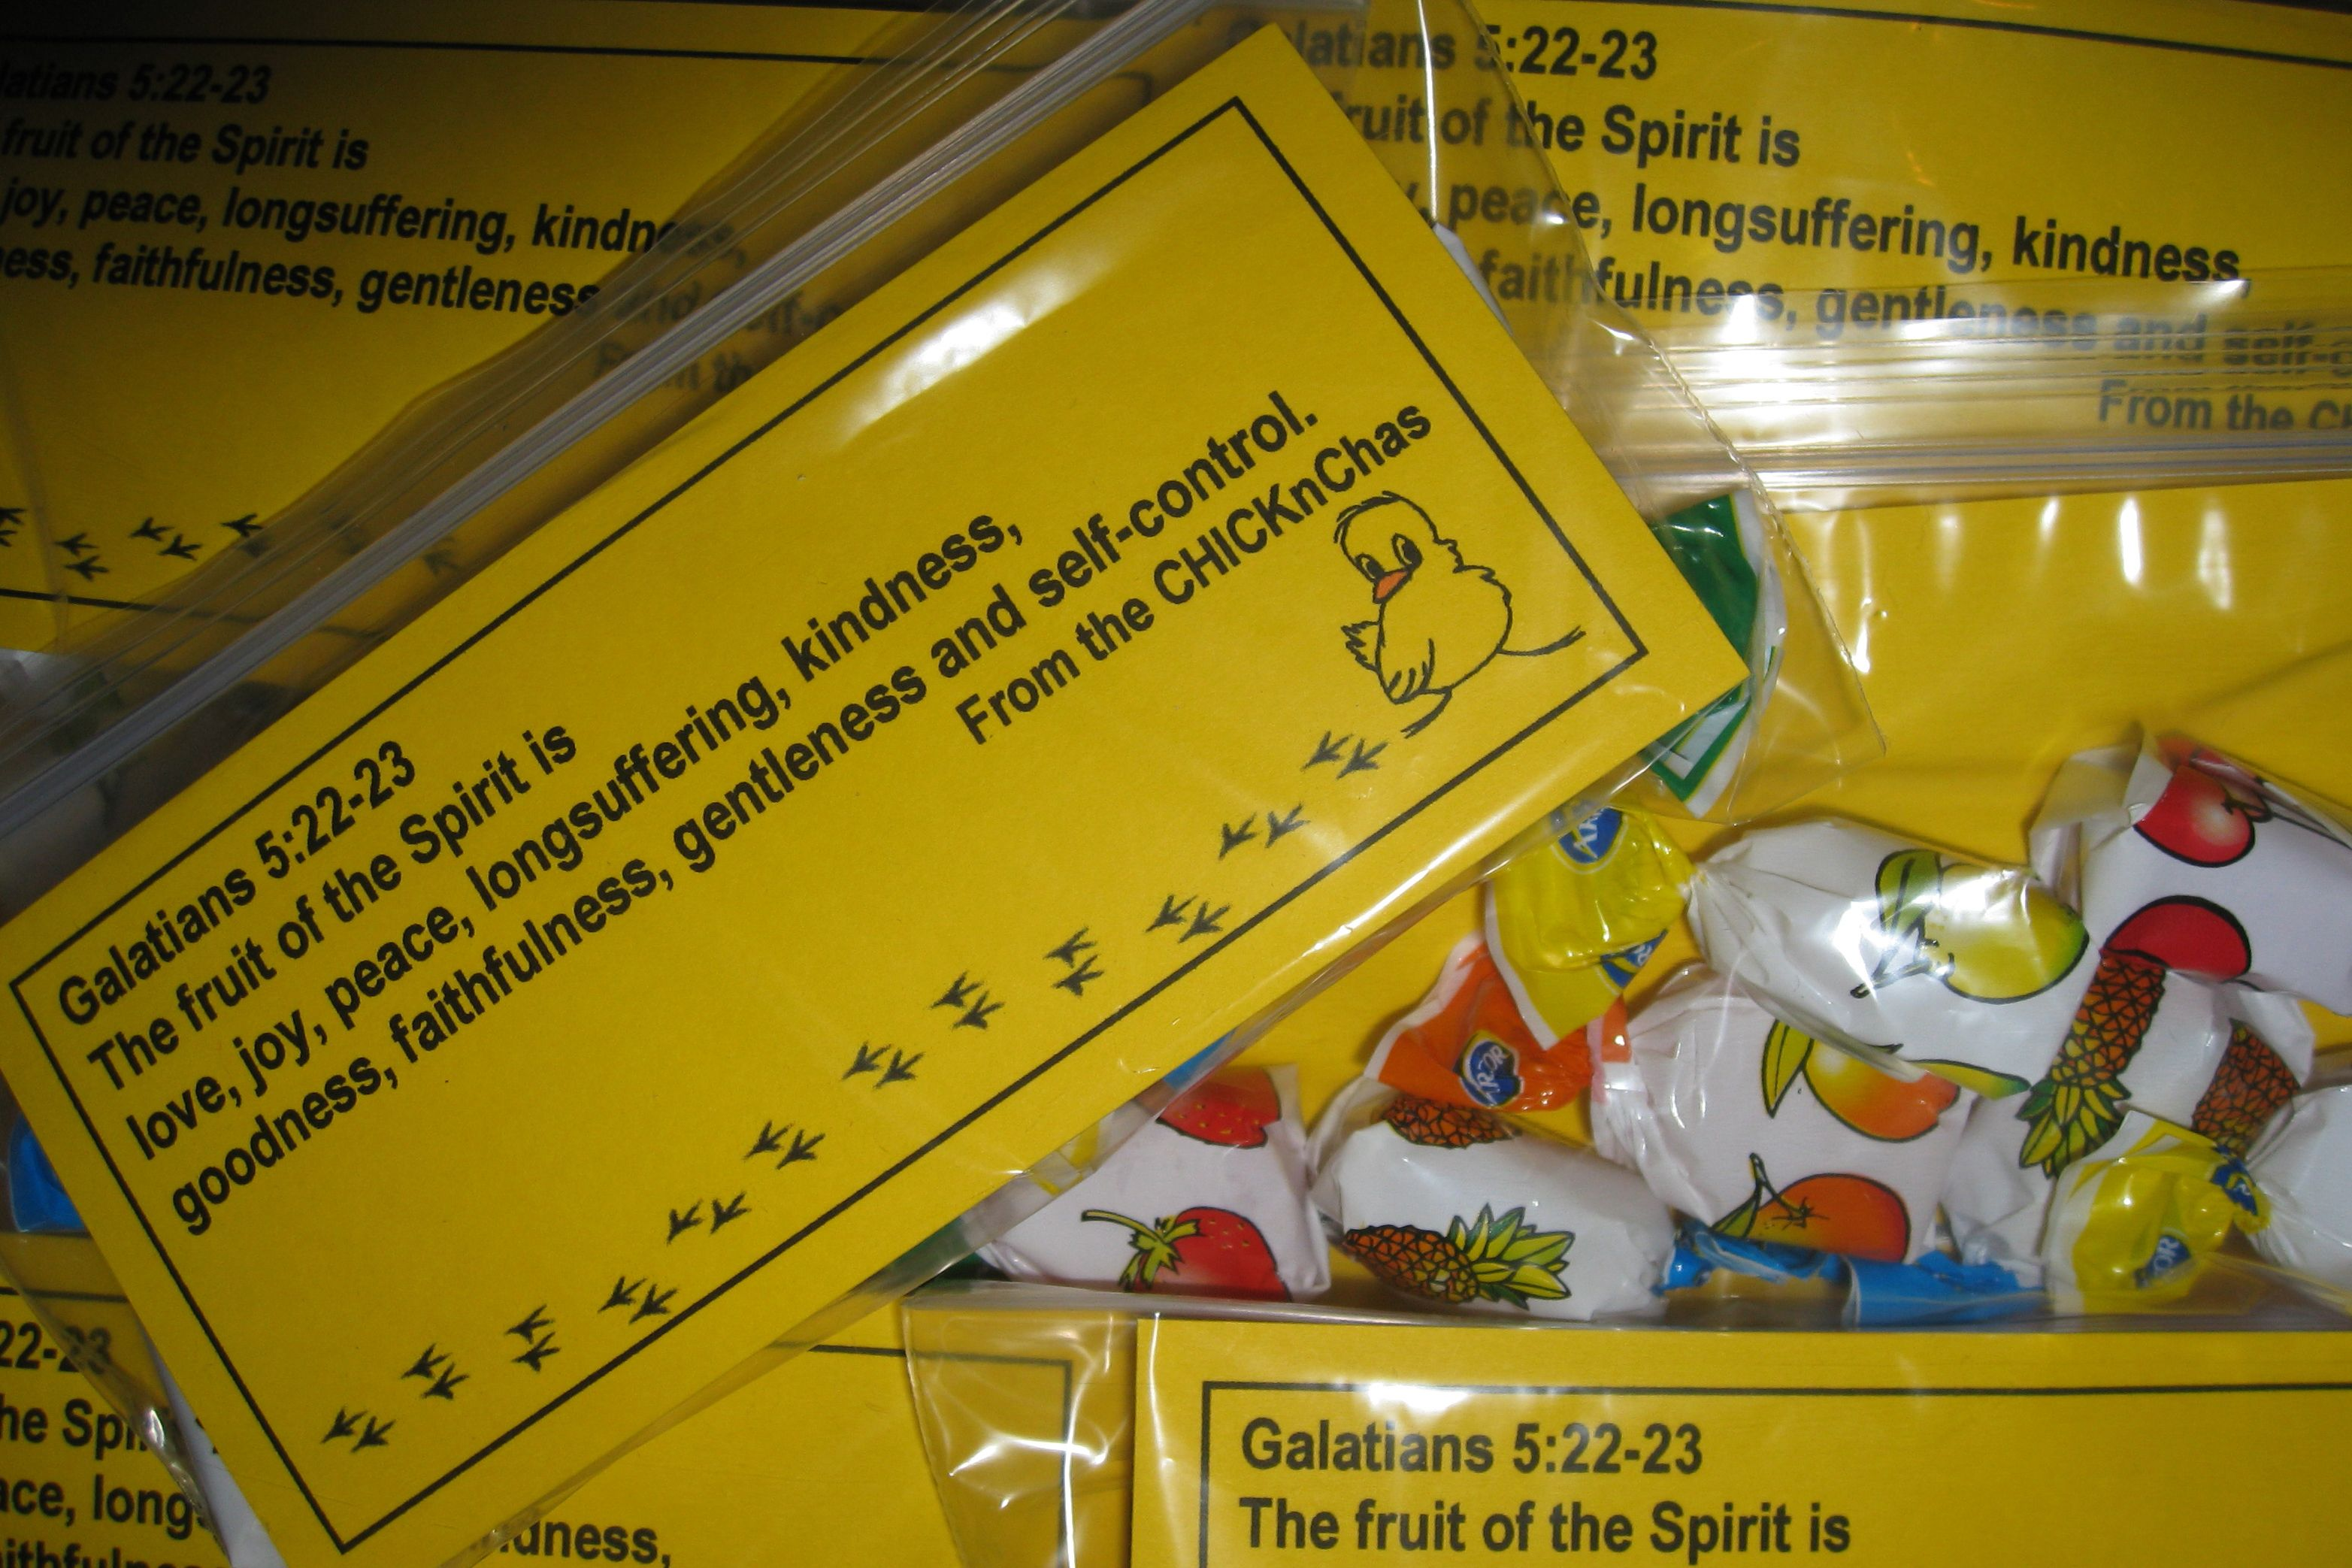 Palanca Galatians 5 22 23 Fruit Of The Spirit Fruit Candy In Baggie With Scripture Card